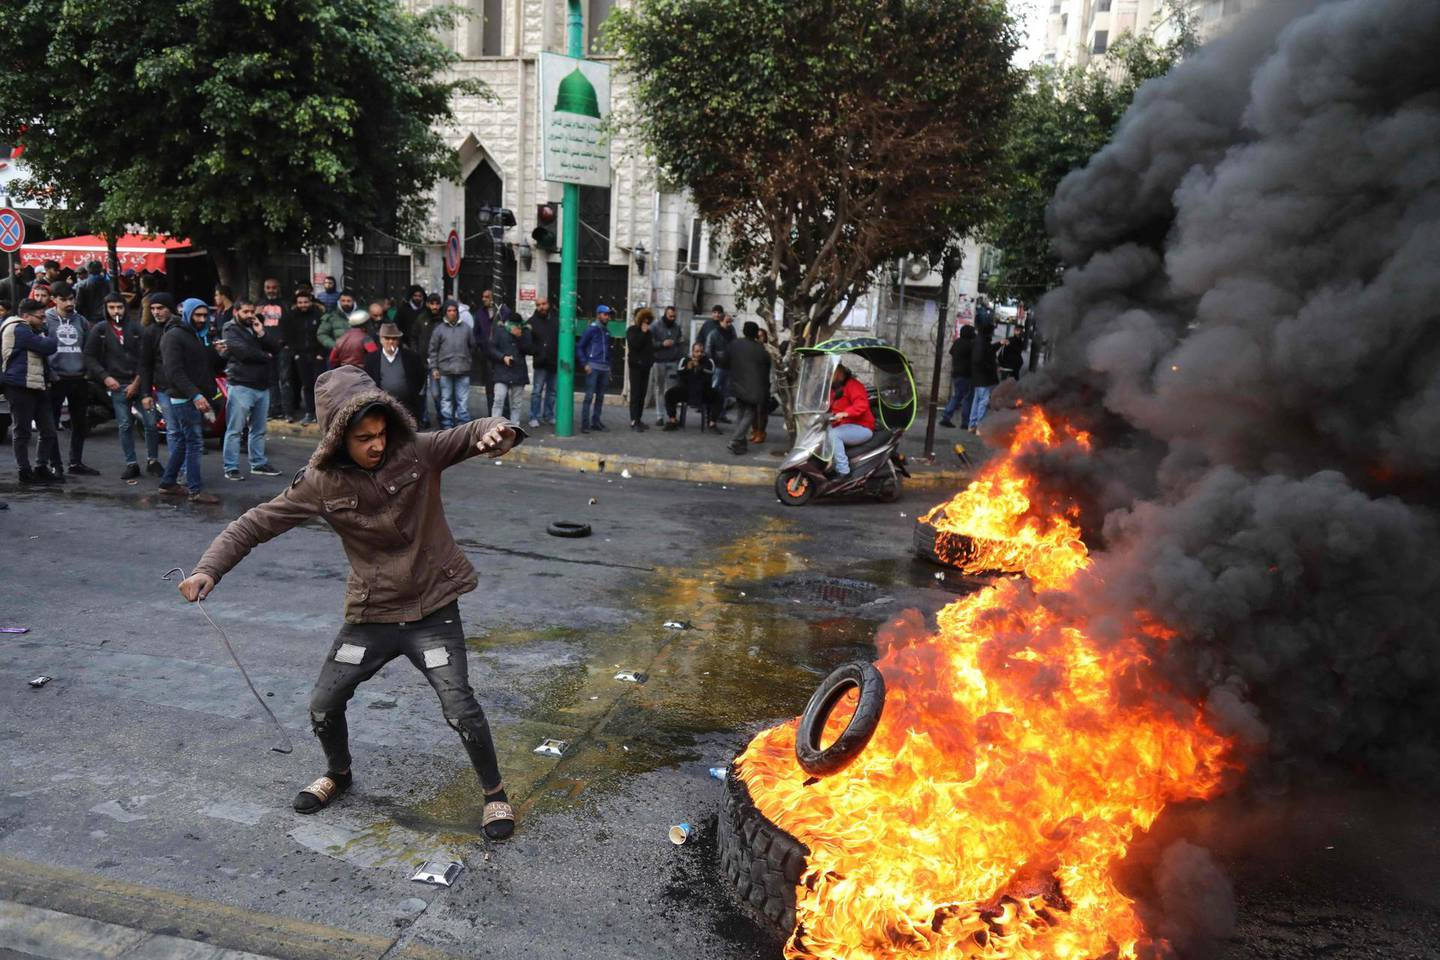 TOPSHOT - A protester throws a tyre on a burning pile blocking the road in the capital Beirut on January 22, 2020. Lebanon ended a painful wait by unveiling a new cabinet line-up, but the government was promptly scorned by protesters and faces the Herculean task of saving a collapsing economy. / AFP / IBRAHIM AMRO